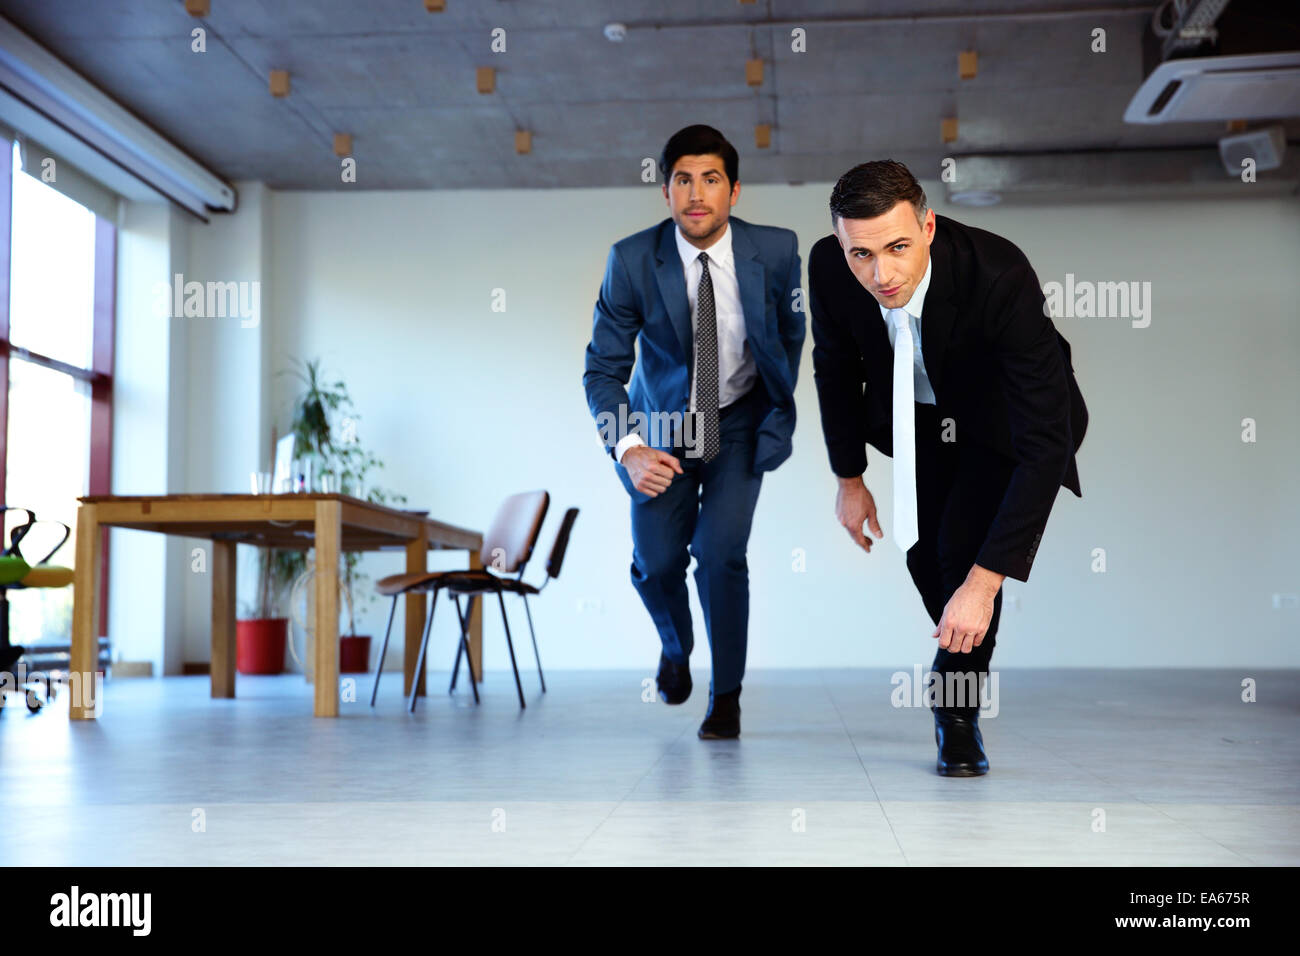 Two businessman running together in office. Business concept Stock Photo